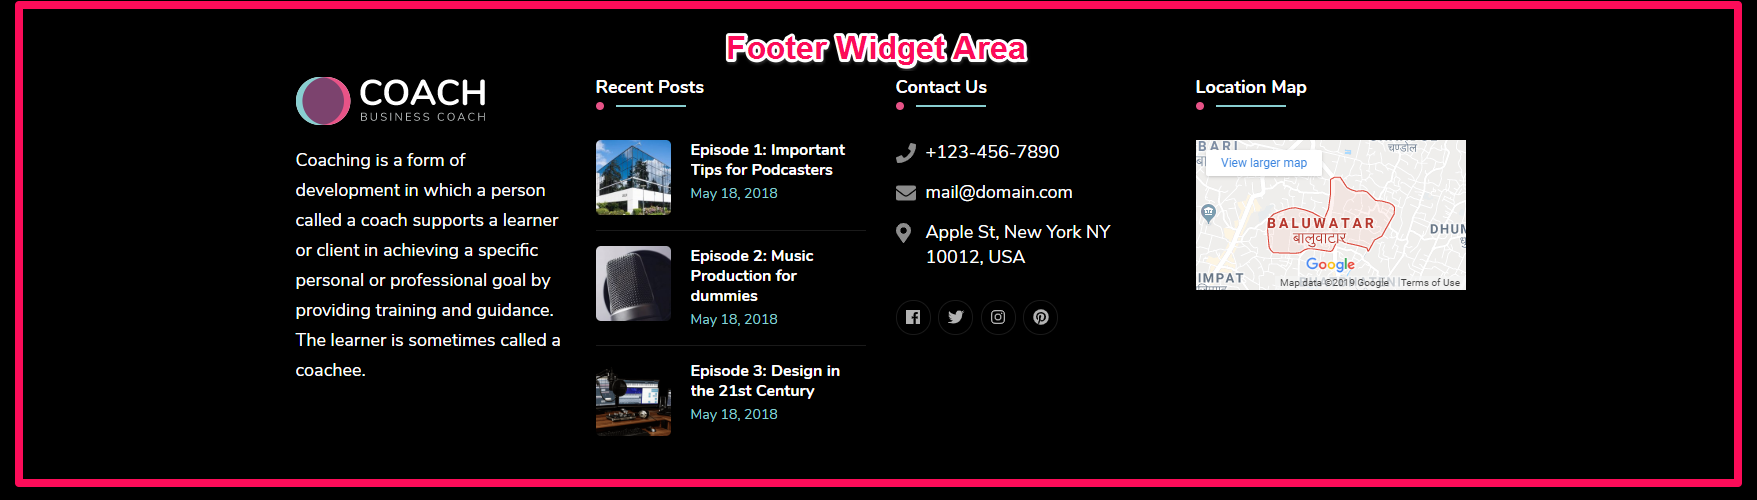 Footer widget area demo